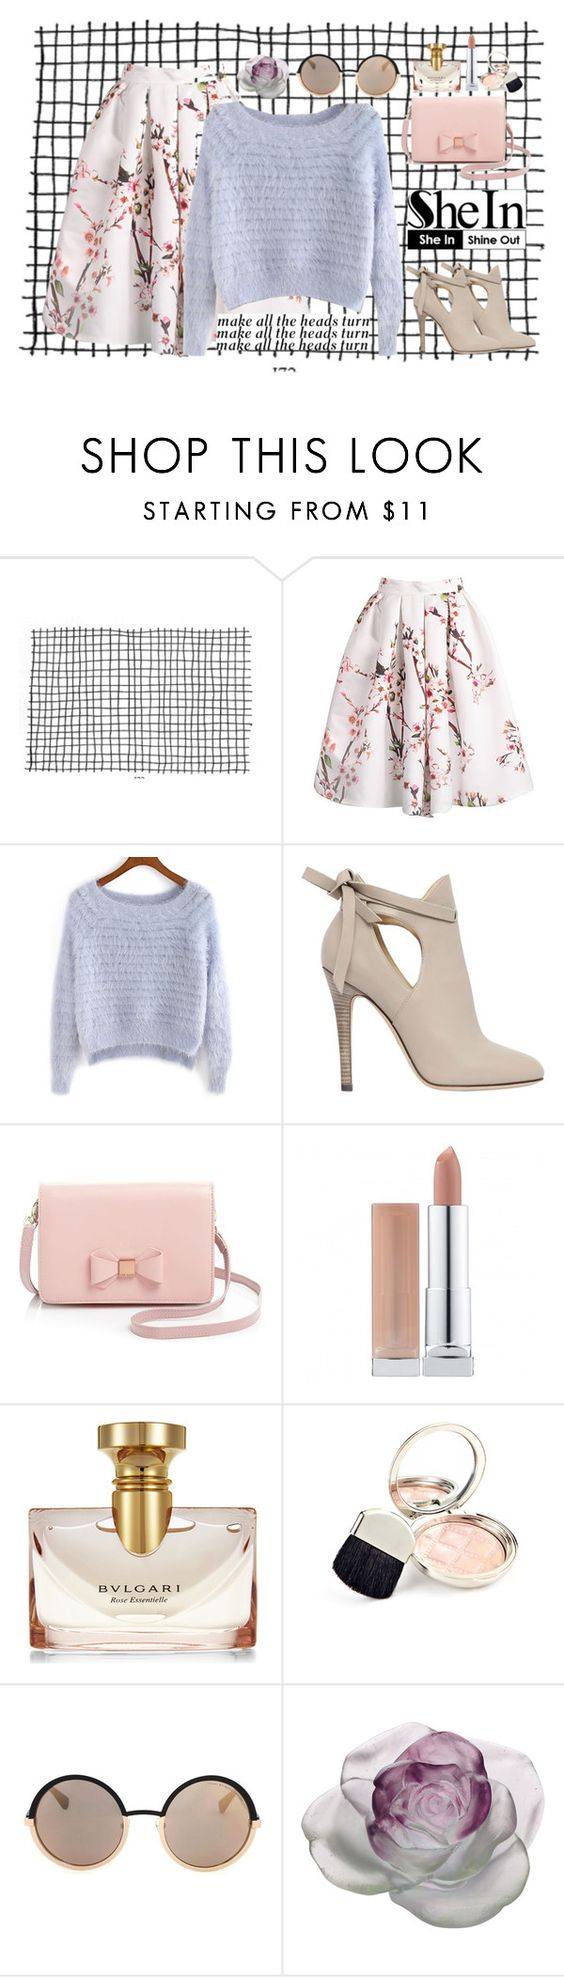 """#Purple Swearter, Who doesn't Like (contest)"" by aliicenpdm ❤ liked on Polyvore featuring Jimmy Choo, Ted Baker, Bulgari, By Terry, Marc by Marc Jacobs and Daum"